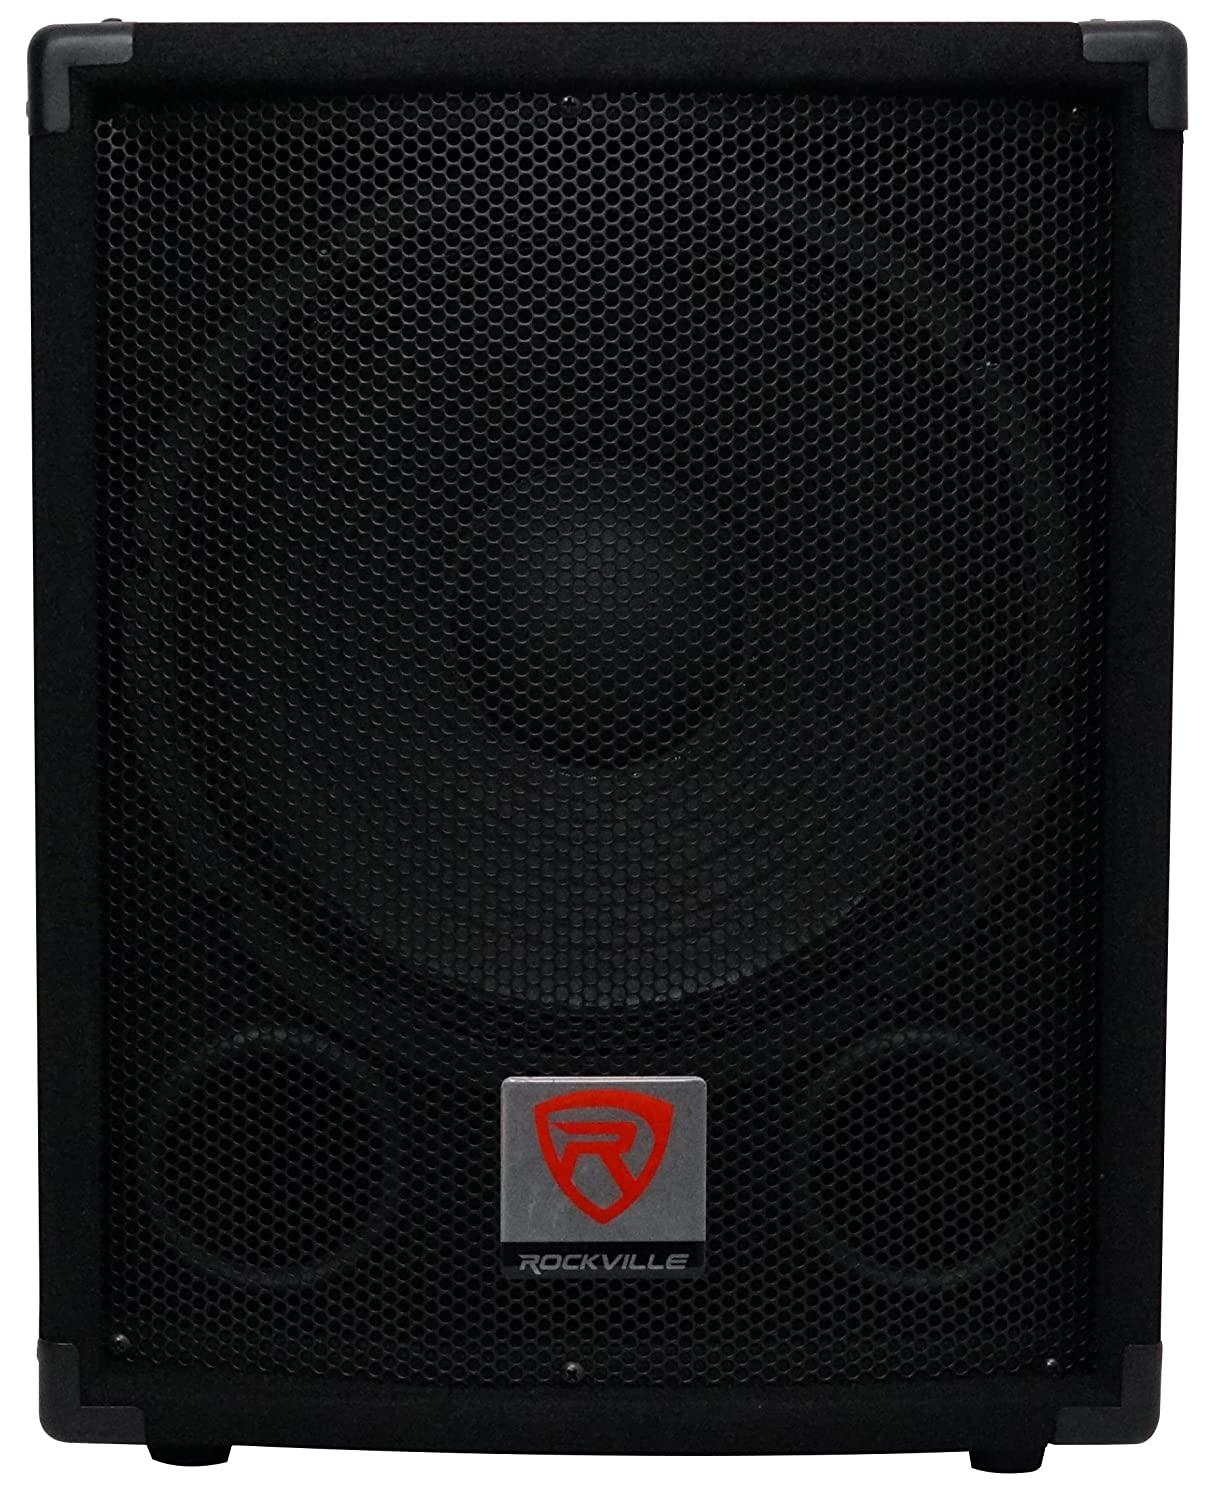 Rockville SBG1124 12-Inch 600 Watt Passive 4-Ohm Pro DJ Subwoofer, MDF/Pole Mount Audiosavings